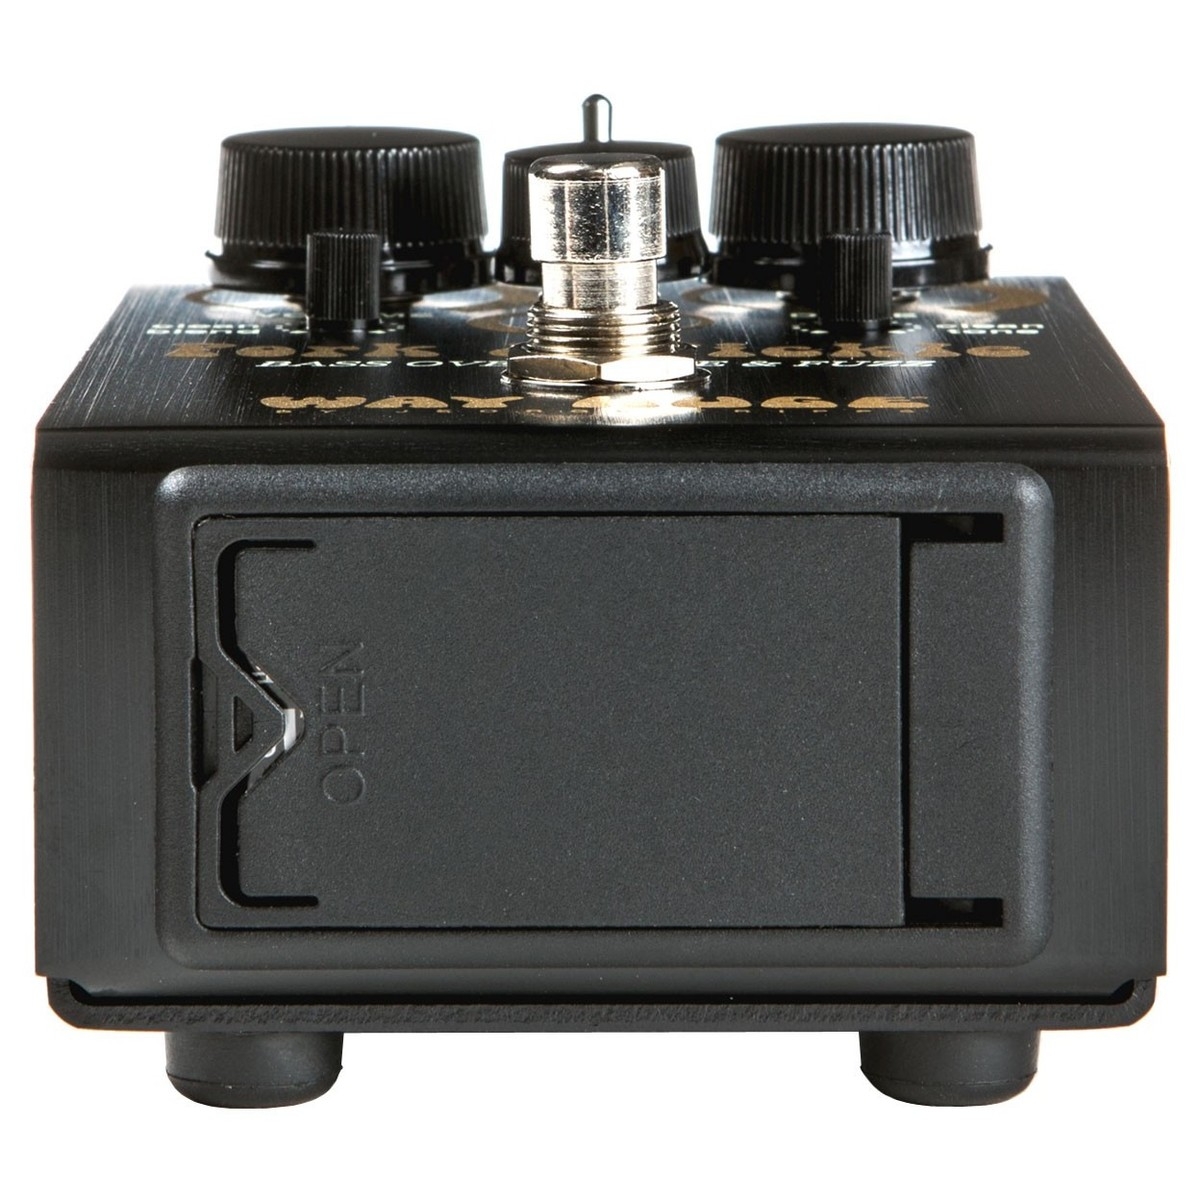 way huge pork pickle overdrive fuzz bass pedal at gear4music. Black Bedroom Furniture Sets. Home Design Ideas